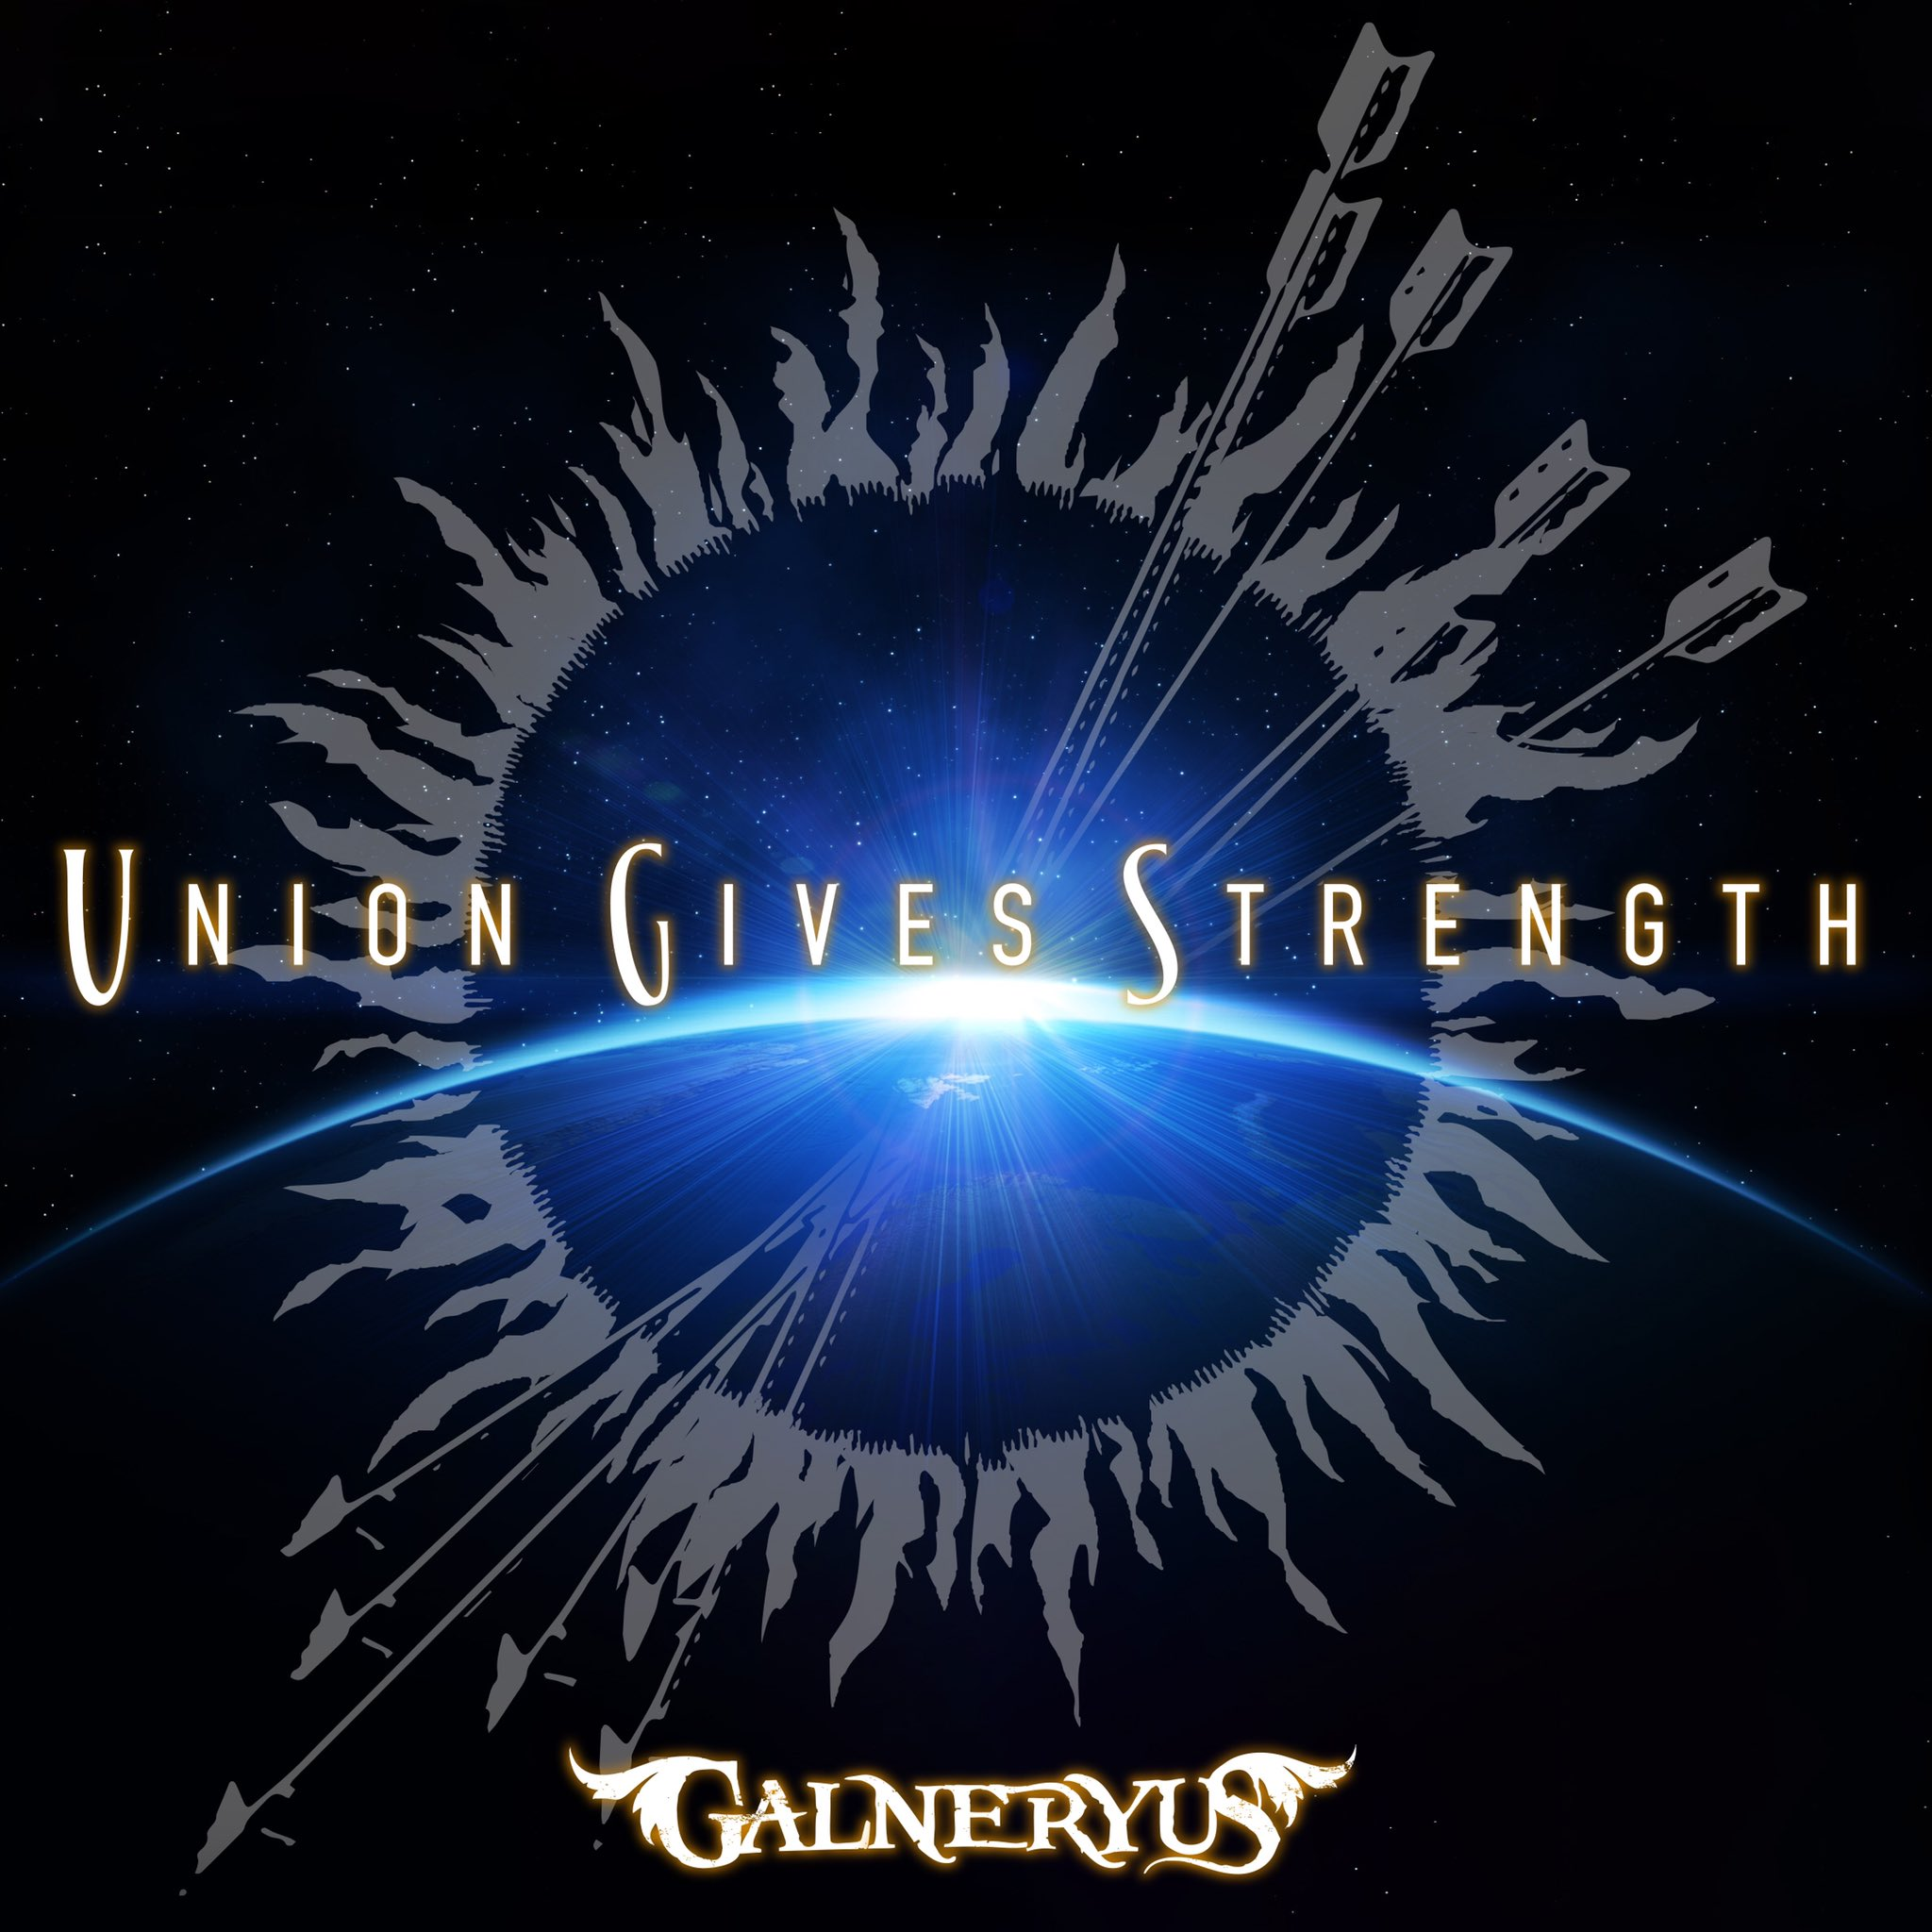 GALNERYUS - WHATEVER IT TAKES (Raise Our Hands!)